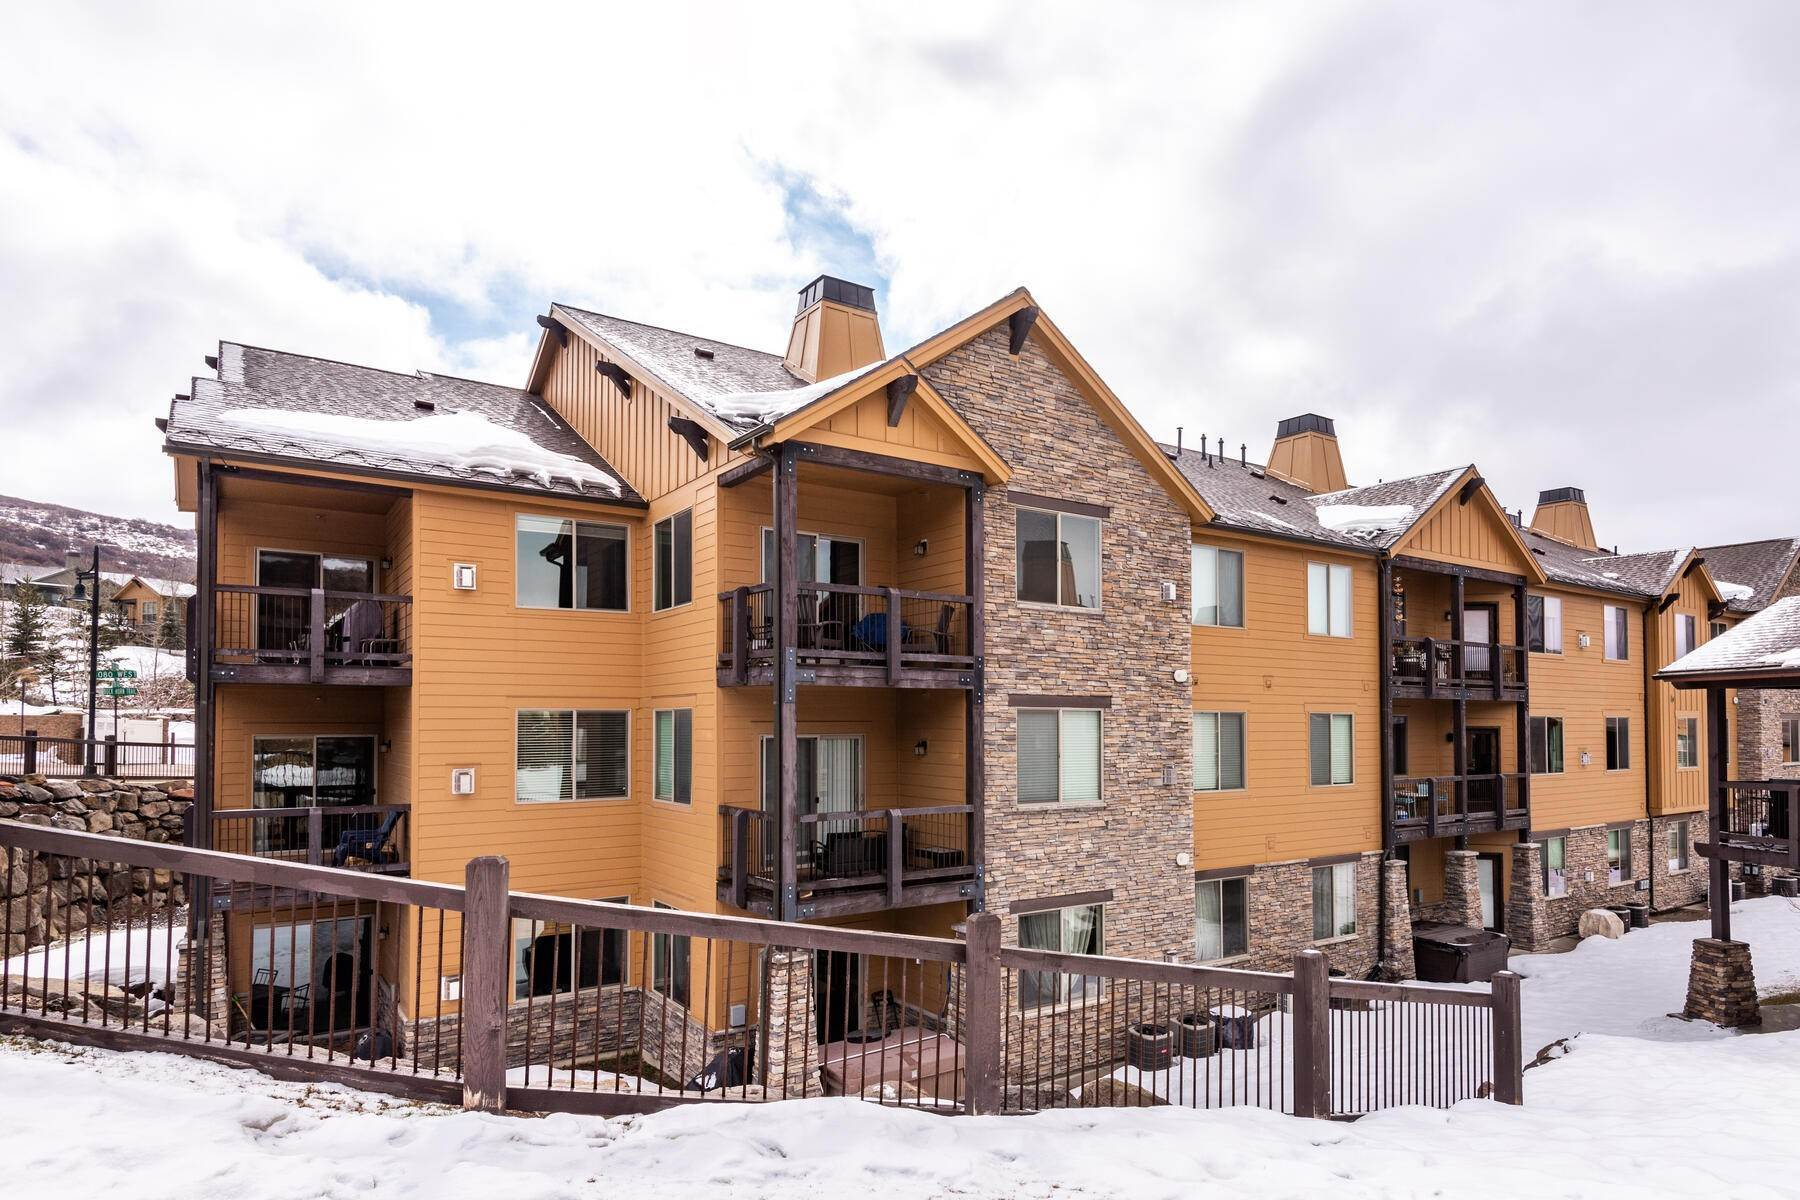 21. Condominiums for Sale at 3 Bedrooms Under $500k Within Minutes of Park City 14345 N Buck Horn Trail E Kamas, Utah 84036 United States